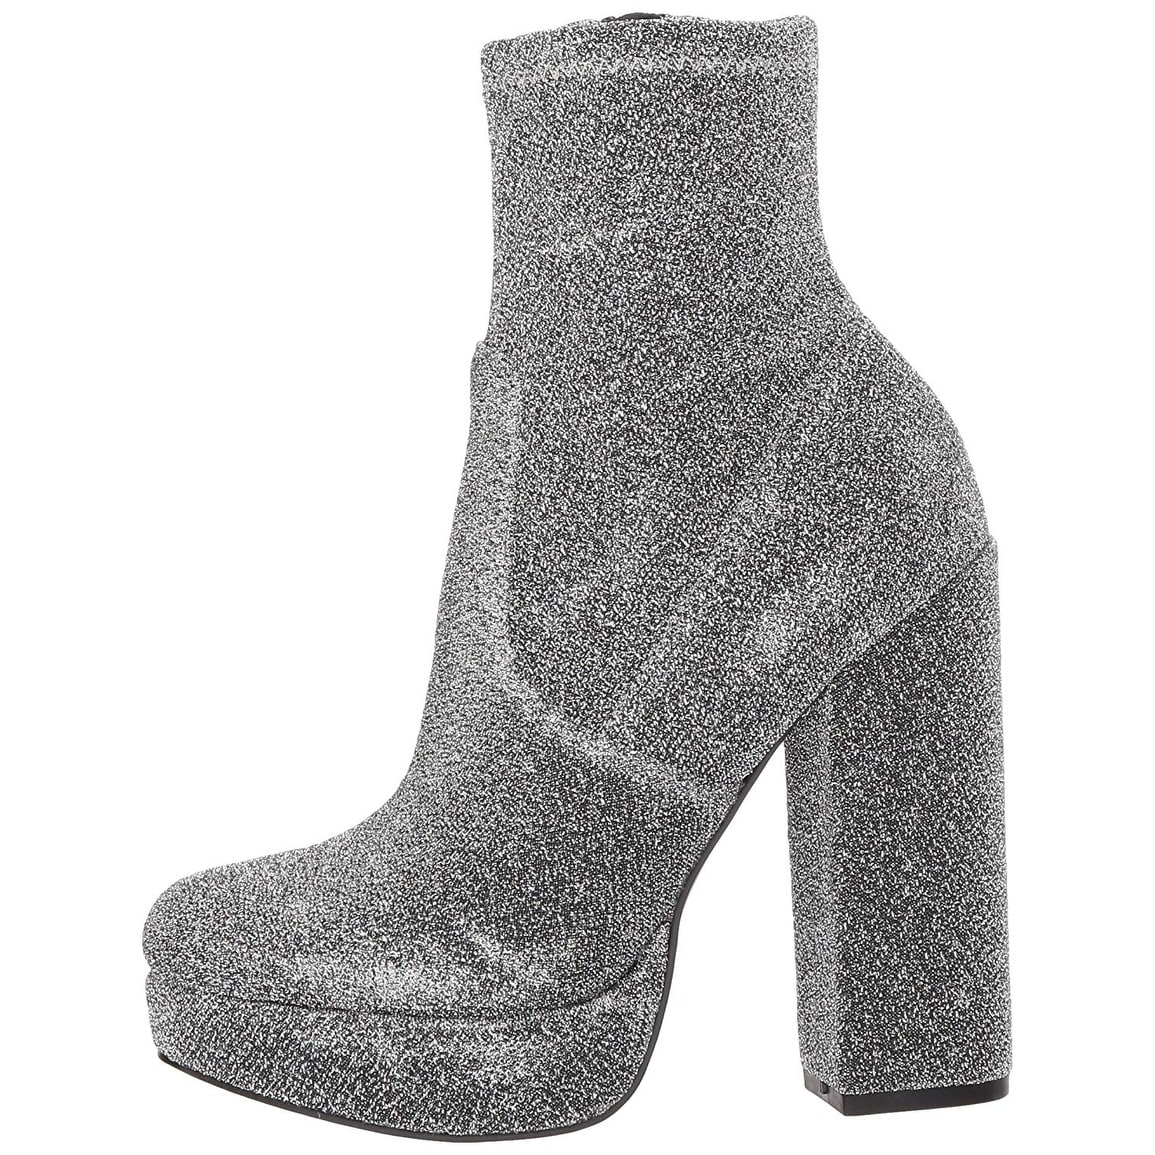 48c5ffdf79f9 Shop Steve Madden Womens Stardust Velvet Round Toe Ankle Fashion Boots -  Free Shipping On Orders Over  45 - Overstock - 22967266